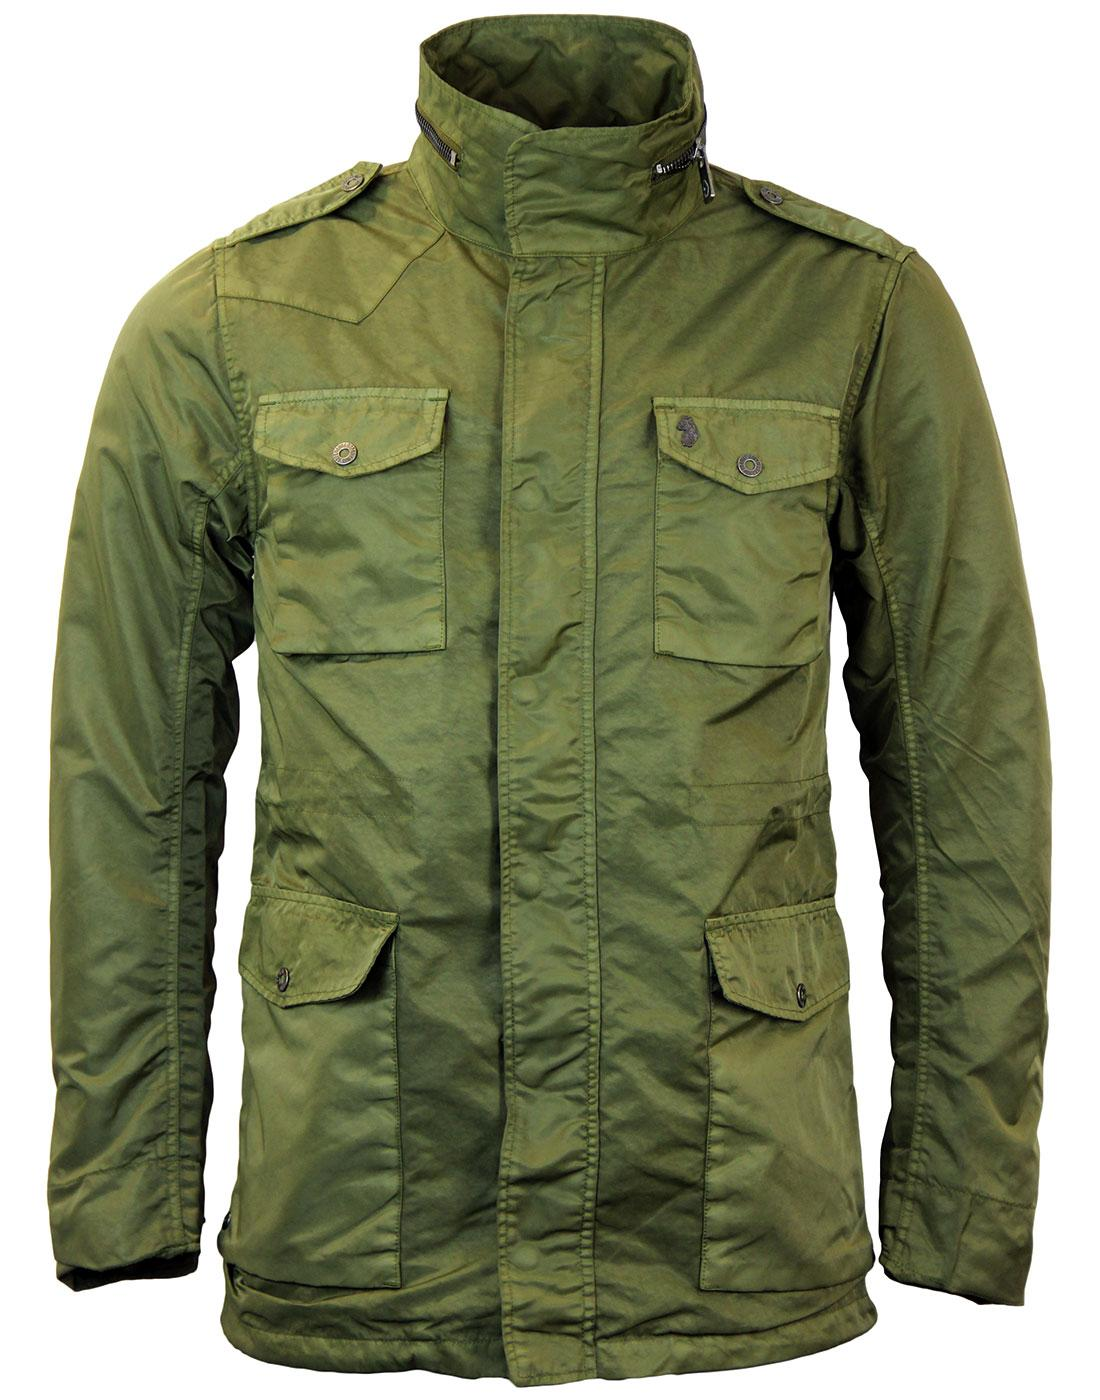 LUKE 1977 Squaddy Retro Mod Military Field Jacket in Pop Khaki 7b35e6dfde